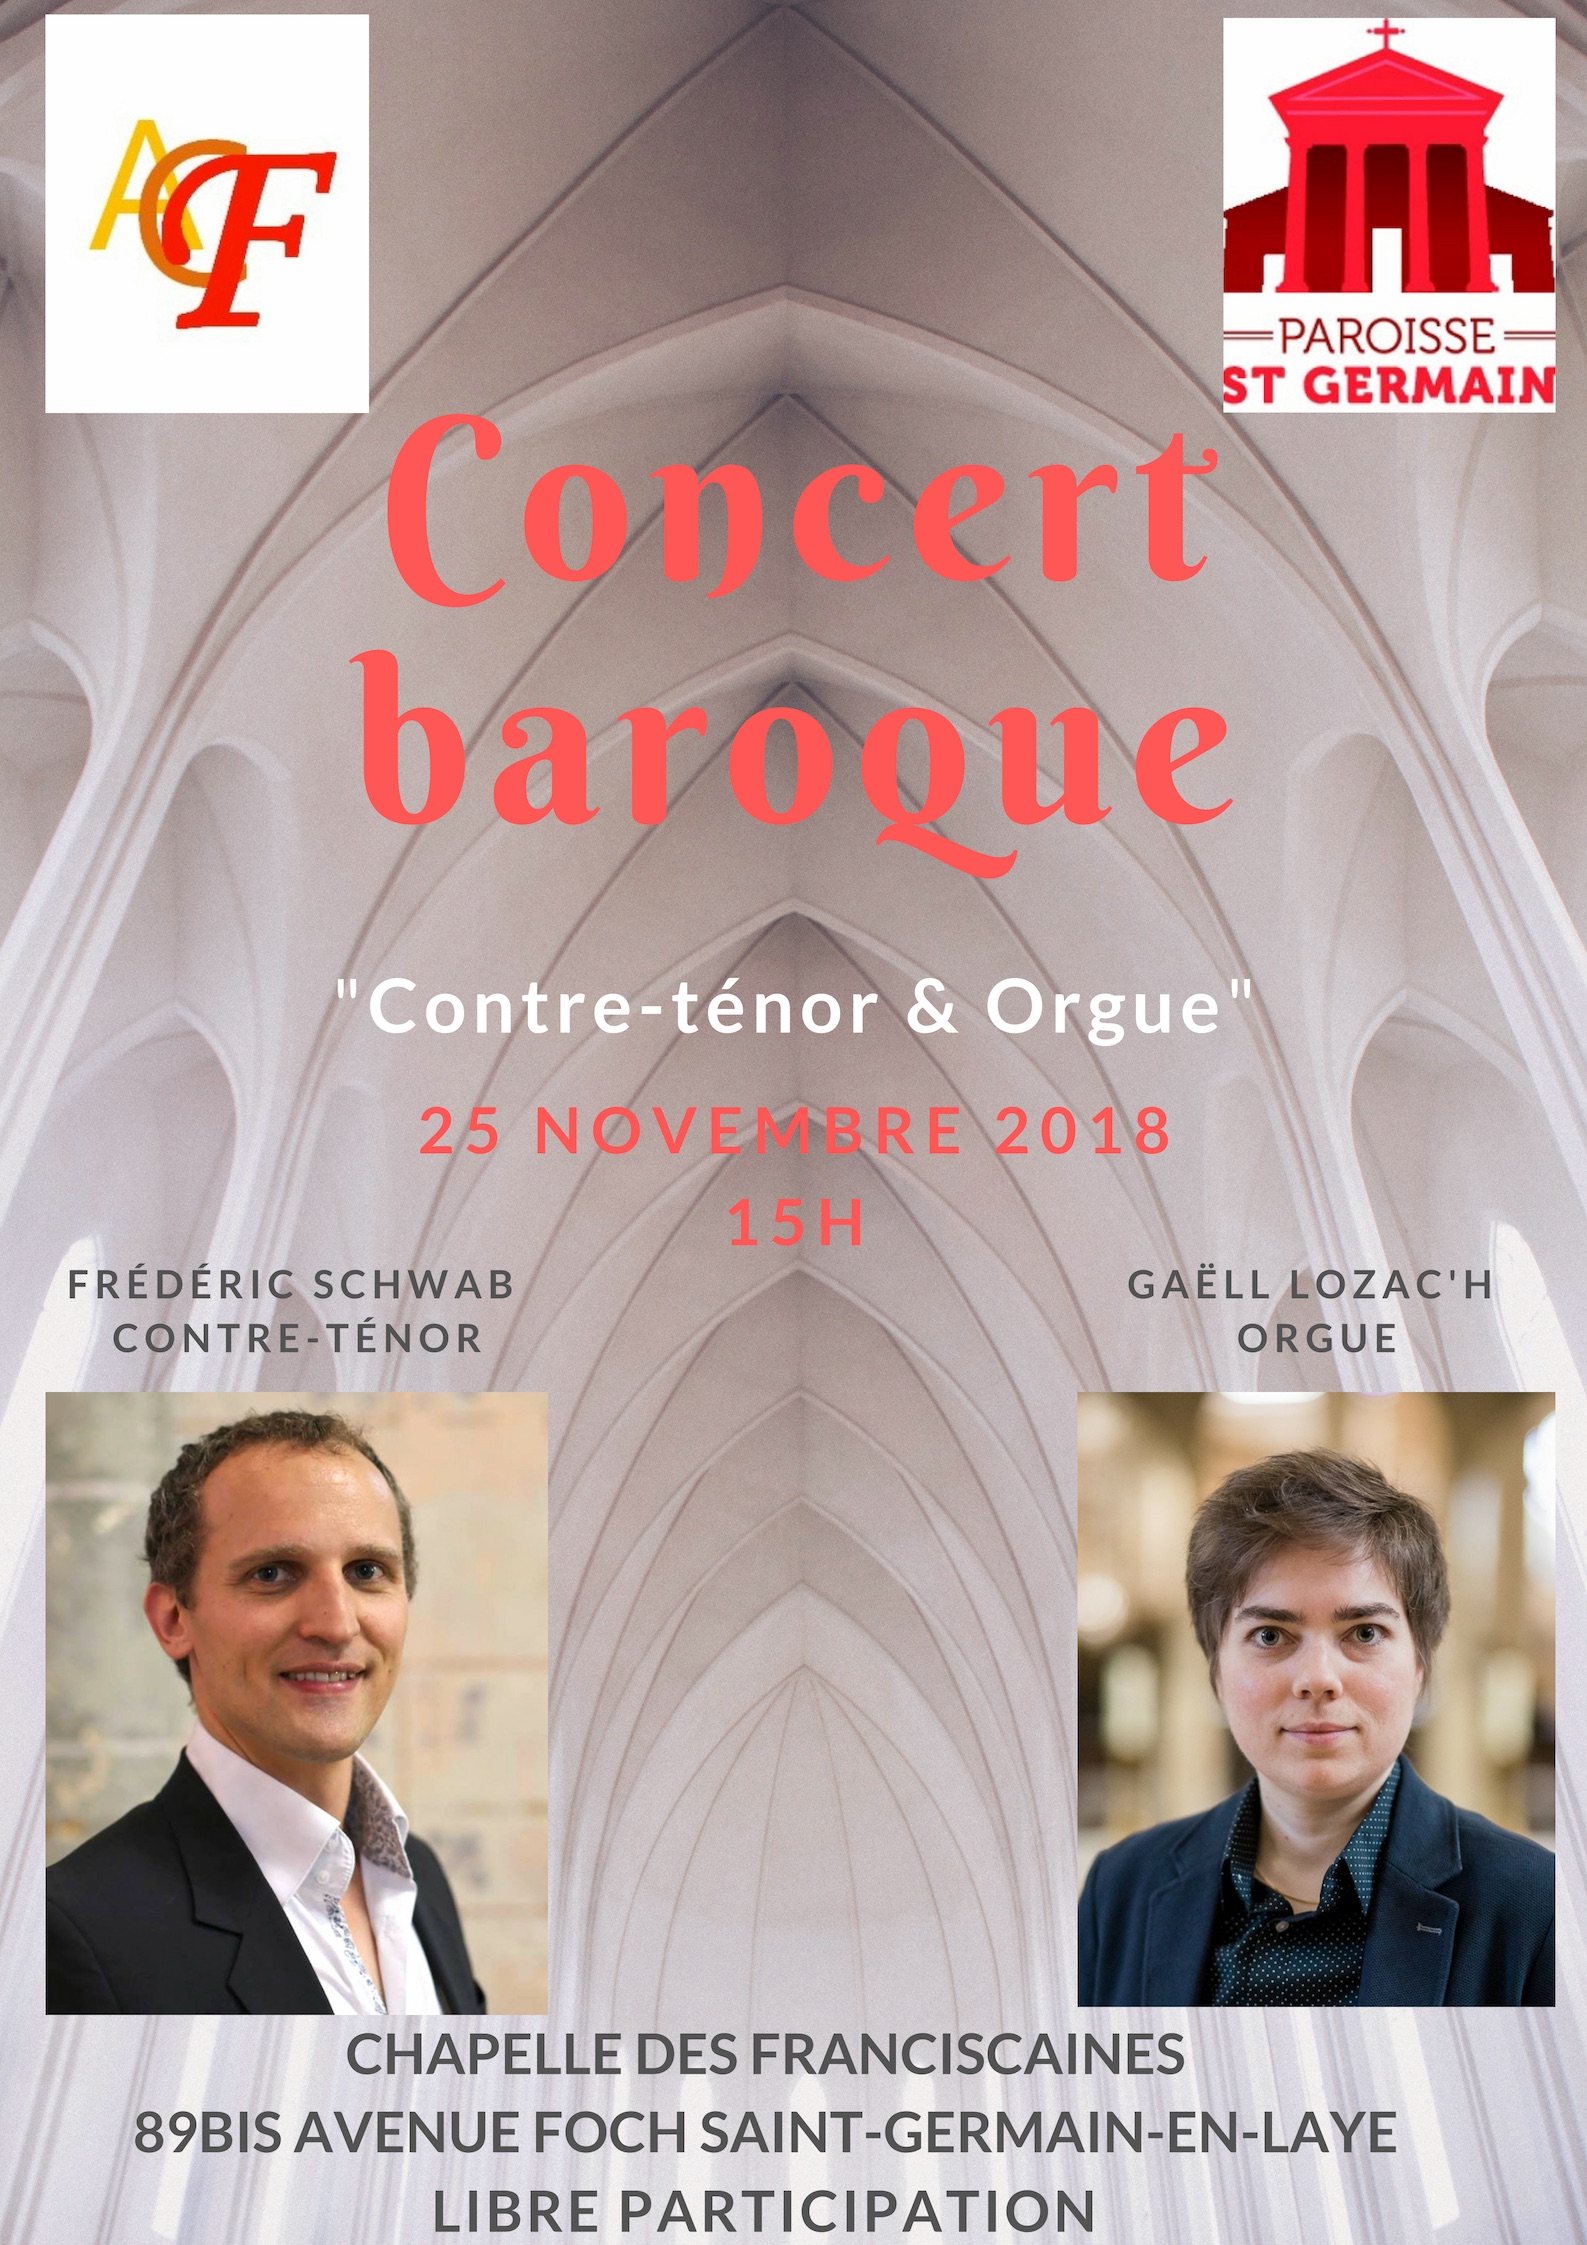 Concert Contre-ténor et orgue à Saint-Germain-en-Laye (78) le 25 novembre 2018